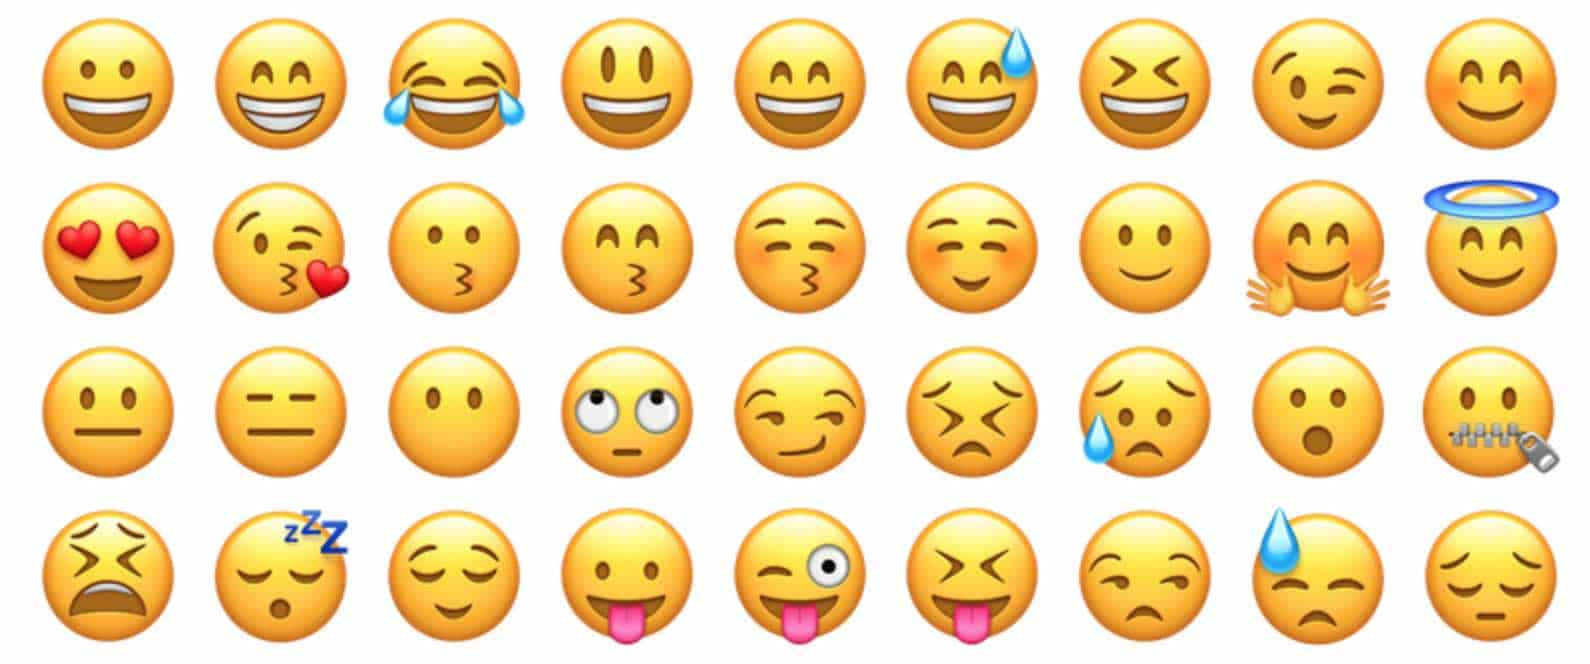 emojis en Adwords whatsapp emojis